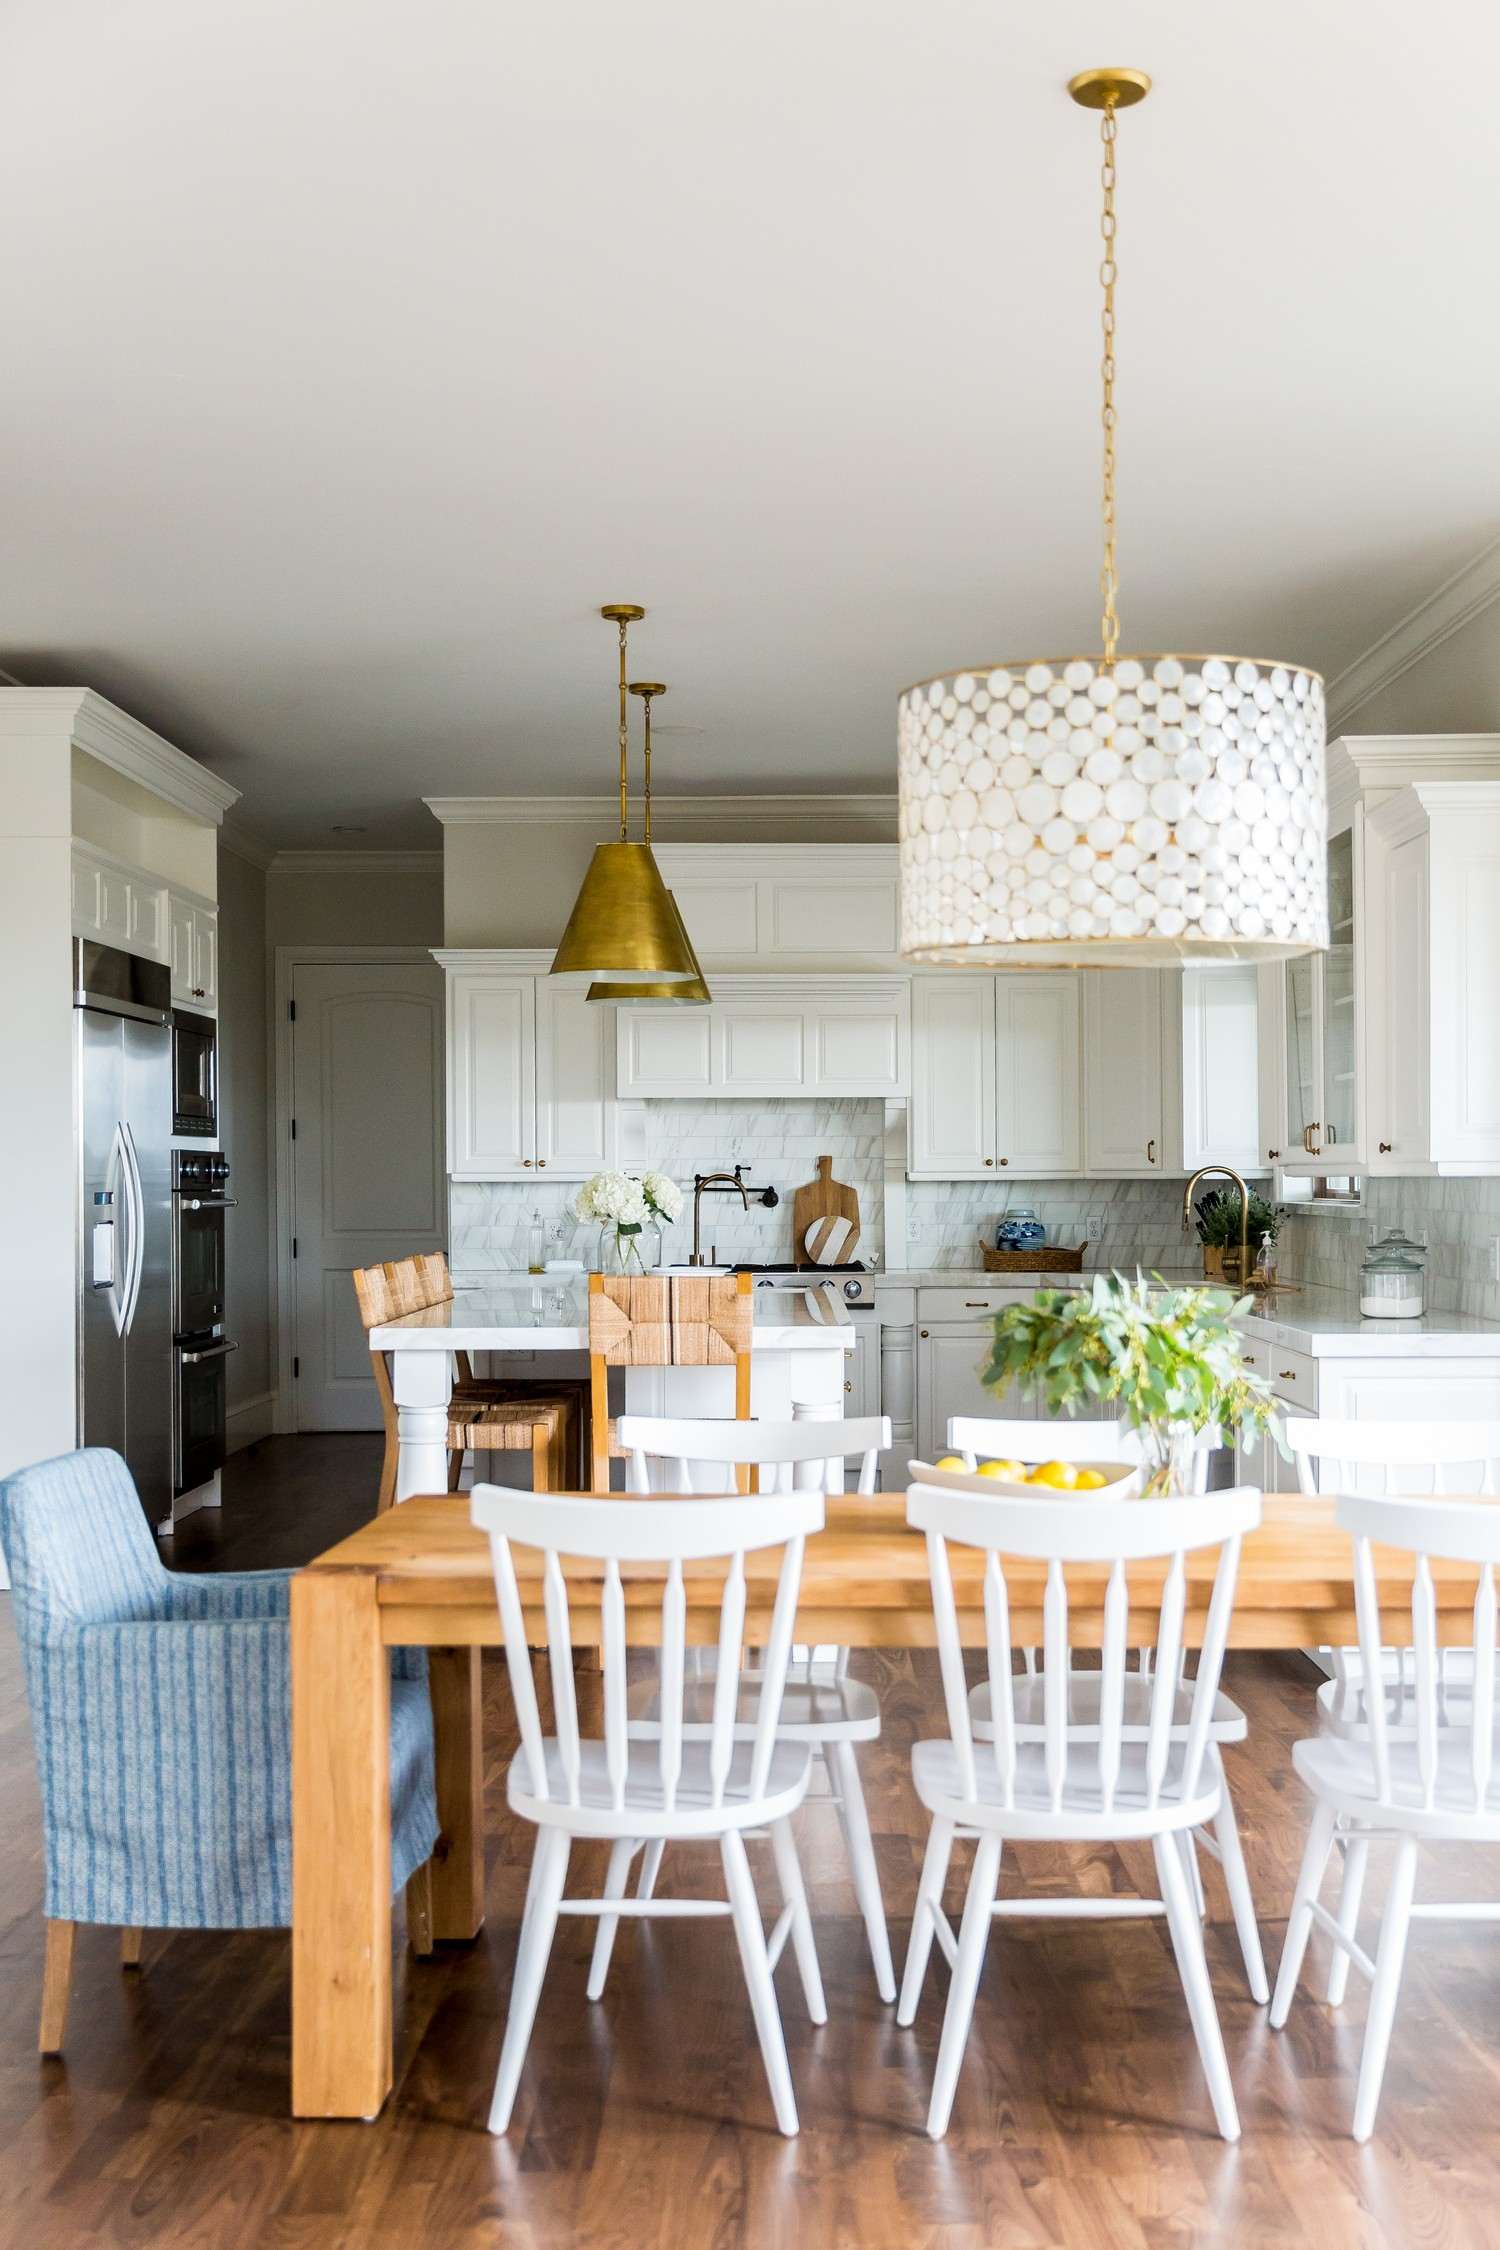 Kitchen makeover tour by Studio McGee